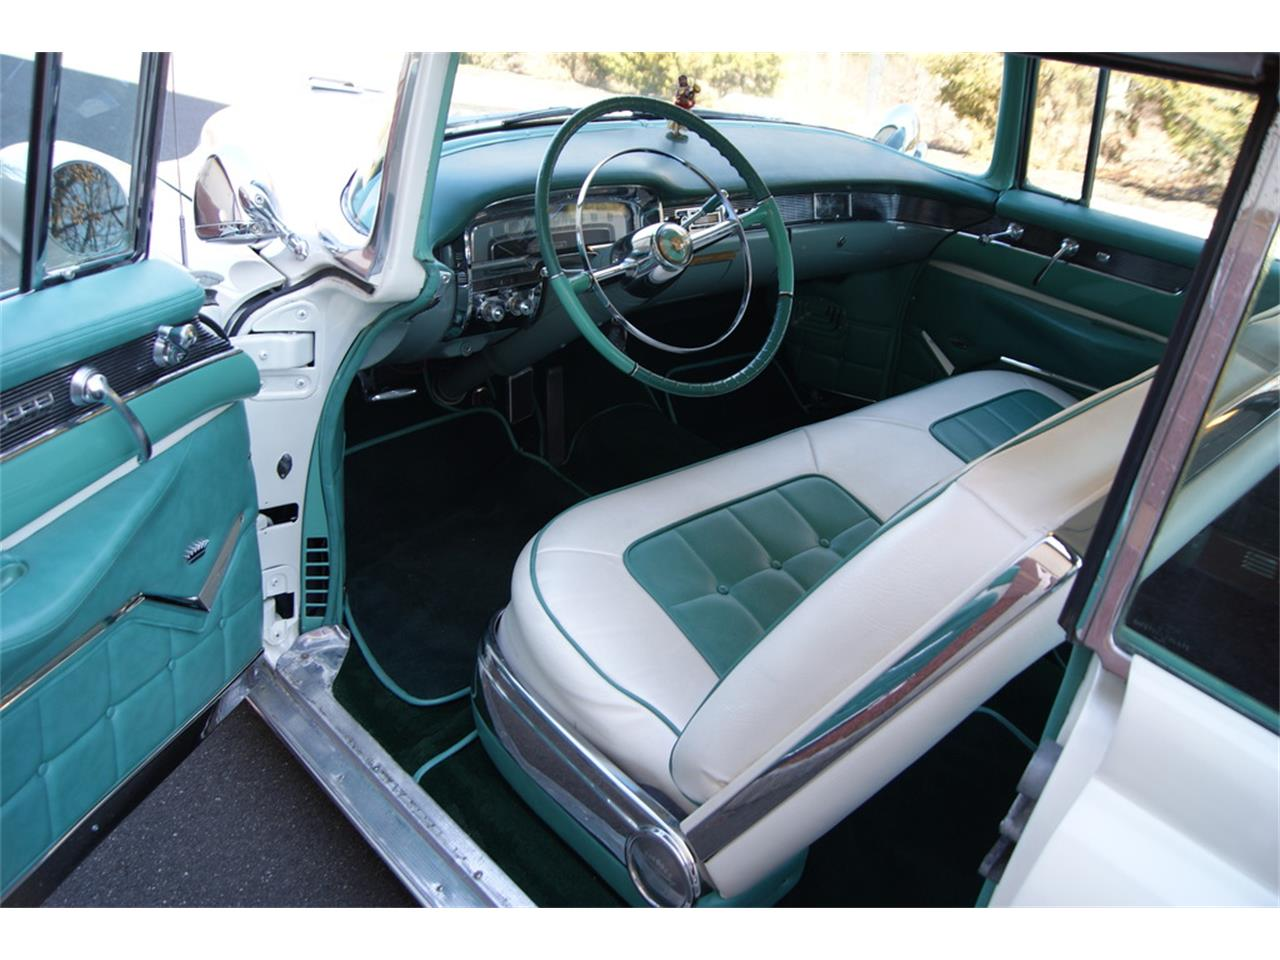 1955 Cadillac Coupe Deville For Sale Classiccars Cc1110774. Large Of '55 Coupe Deville Nt2u. Cadillac. 55 Cadillac Wiring Seat At Scoala.co